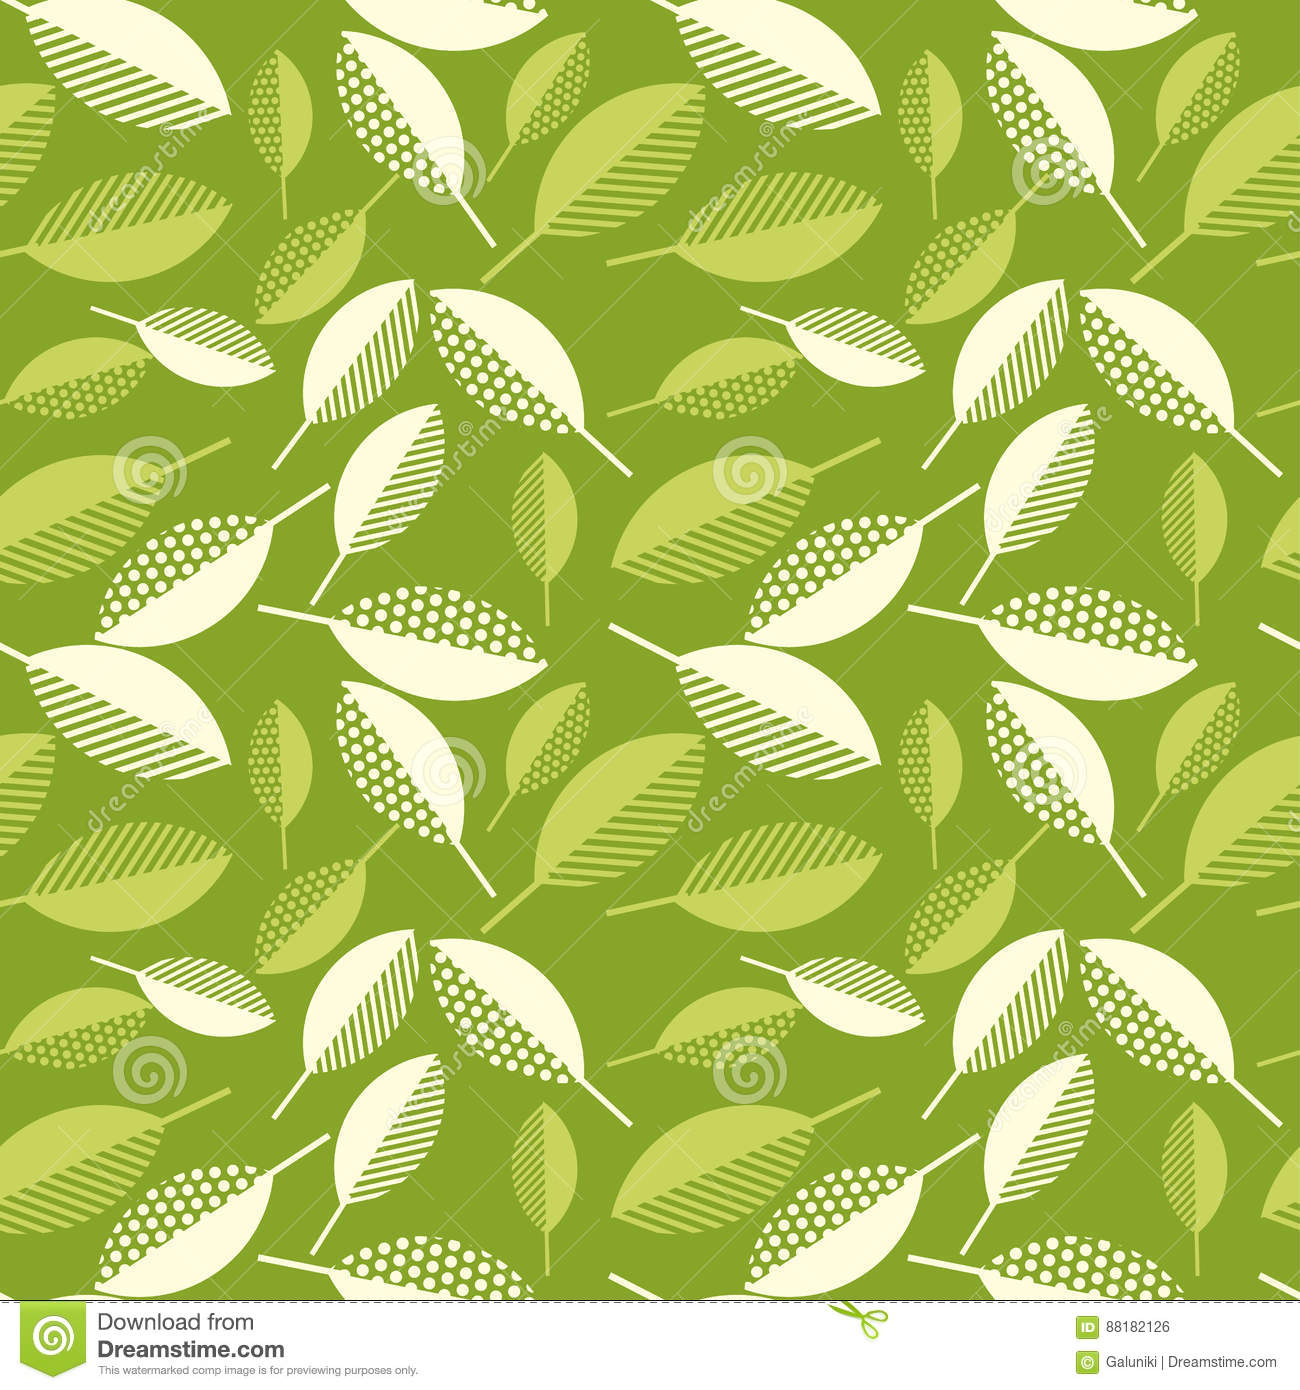 Spring Green Leaves Abstract Vector Illustration. Stock Vector ...